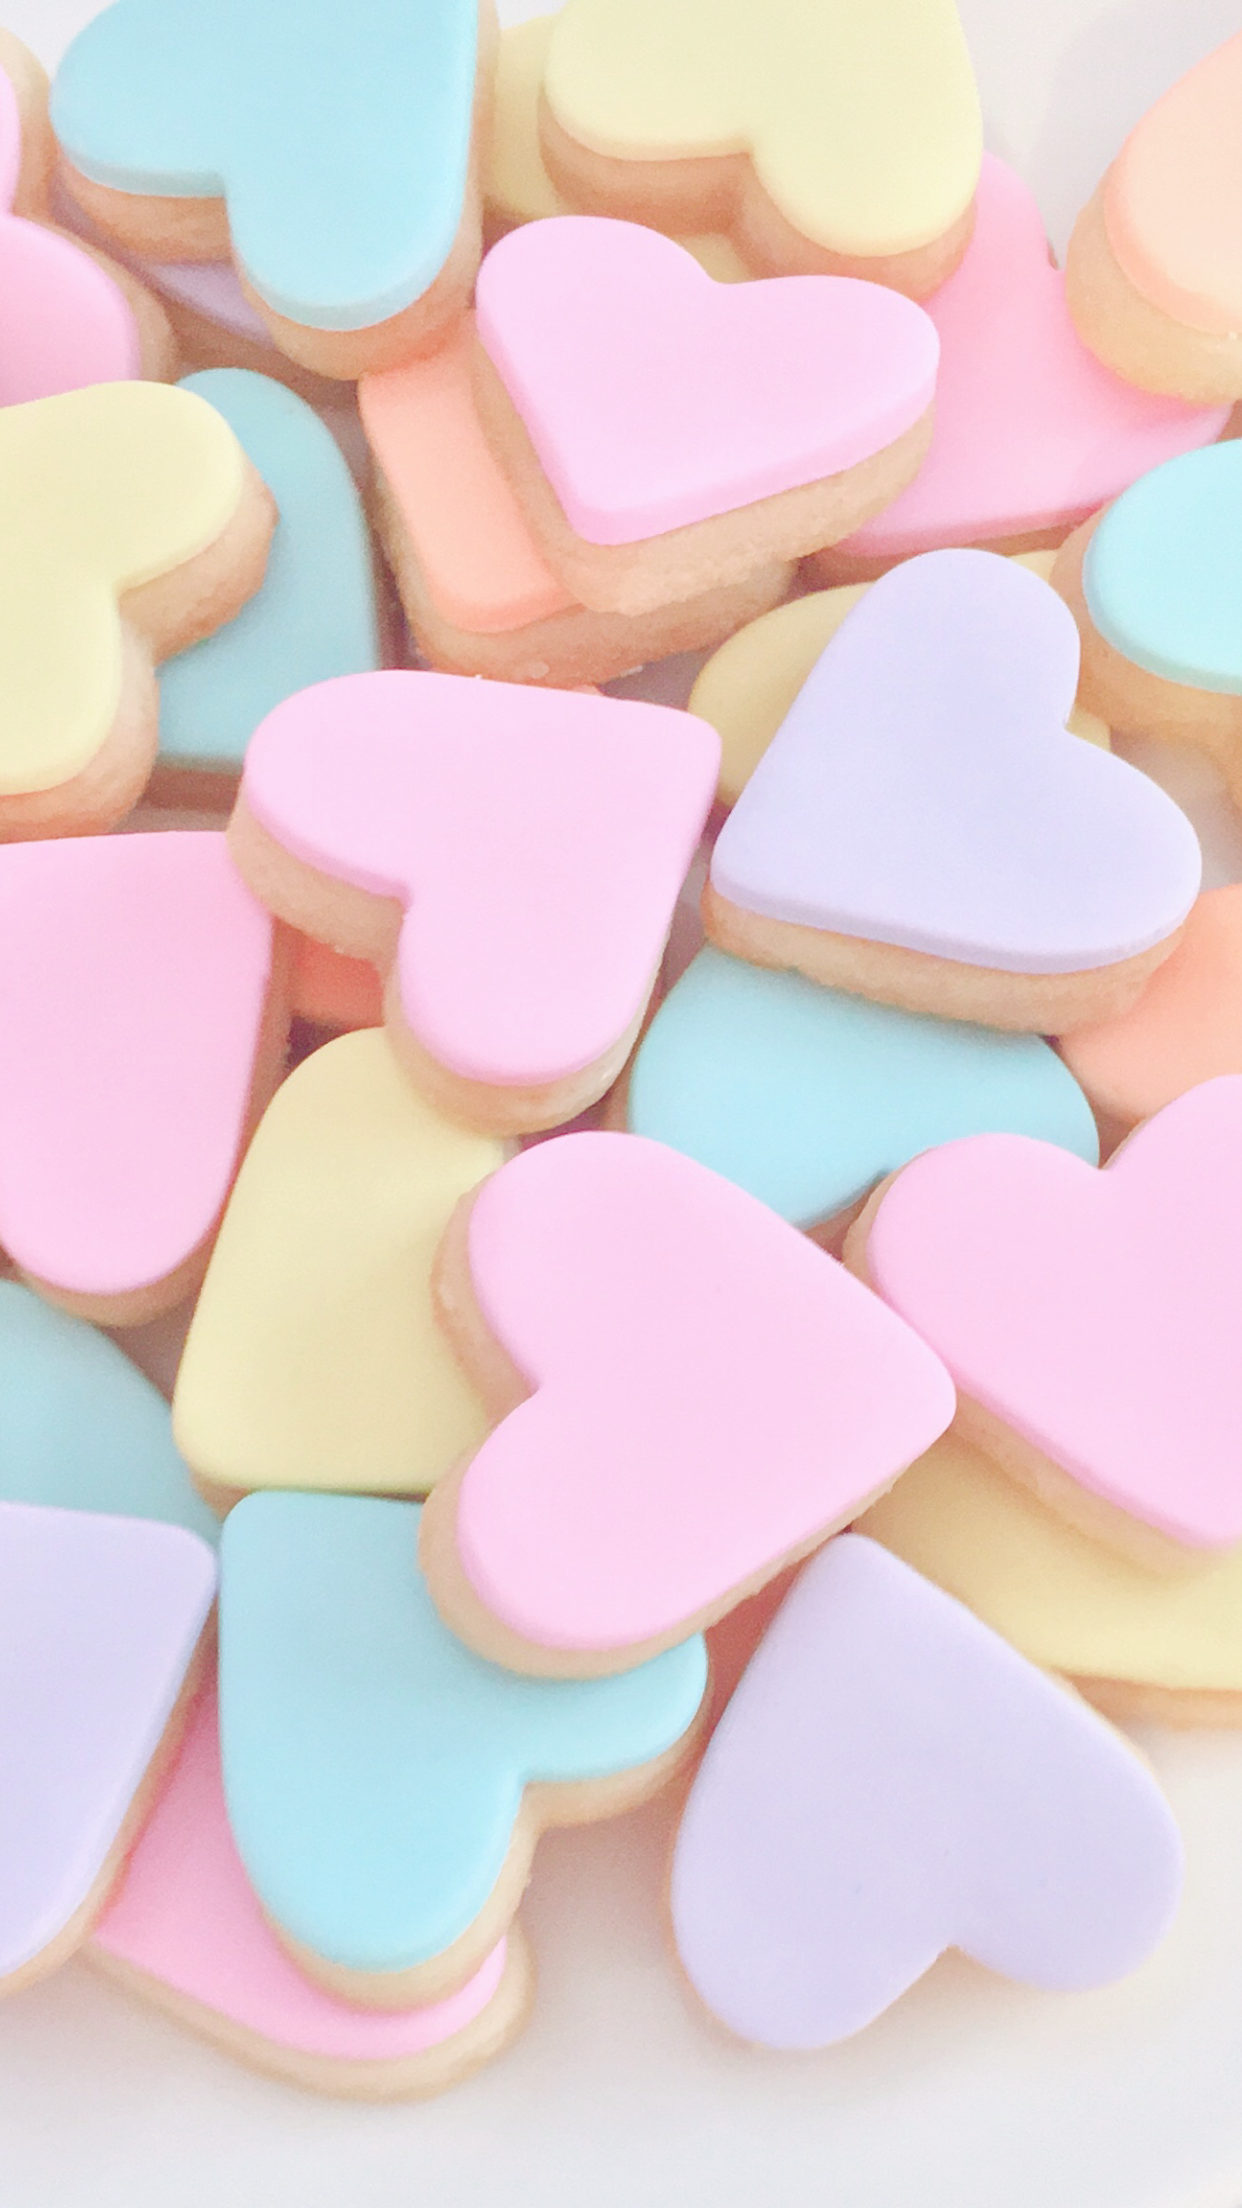 Sugar Cookies With Pastel Colors Pastel Desserts Pastel Candy Pastel Aesthetic